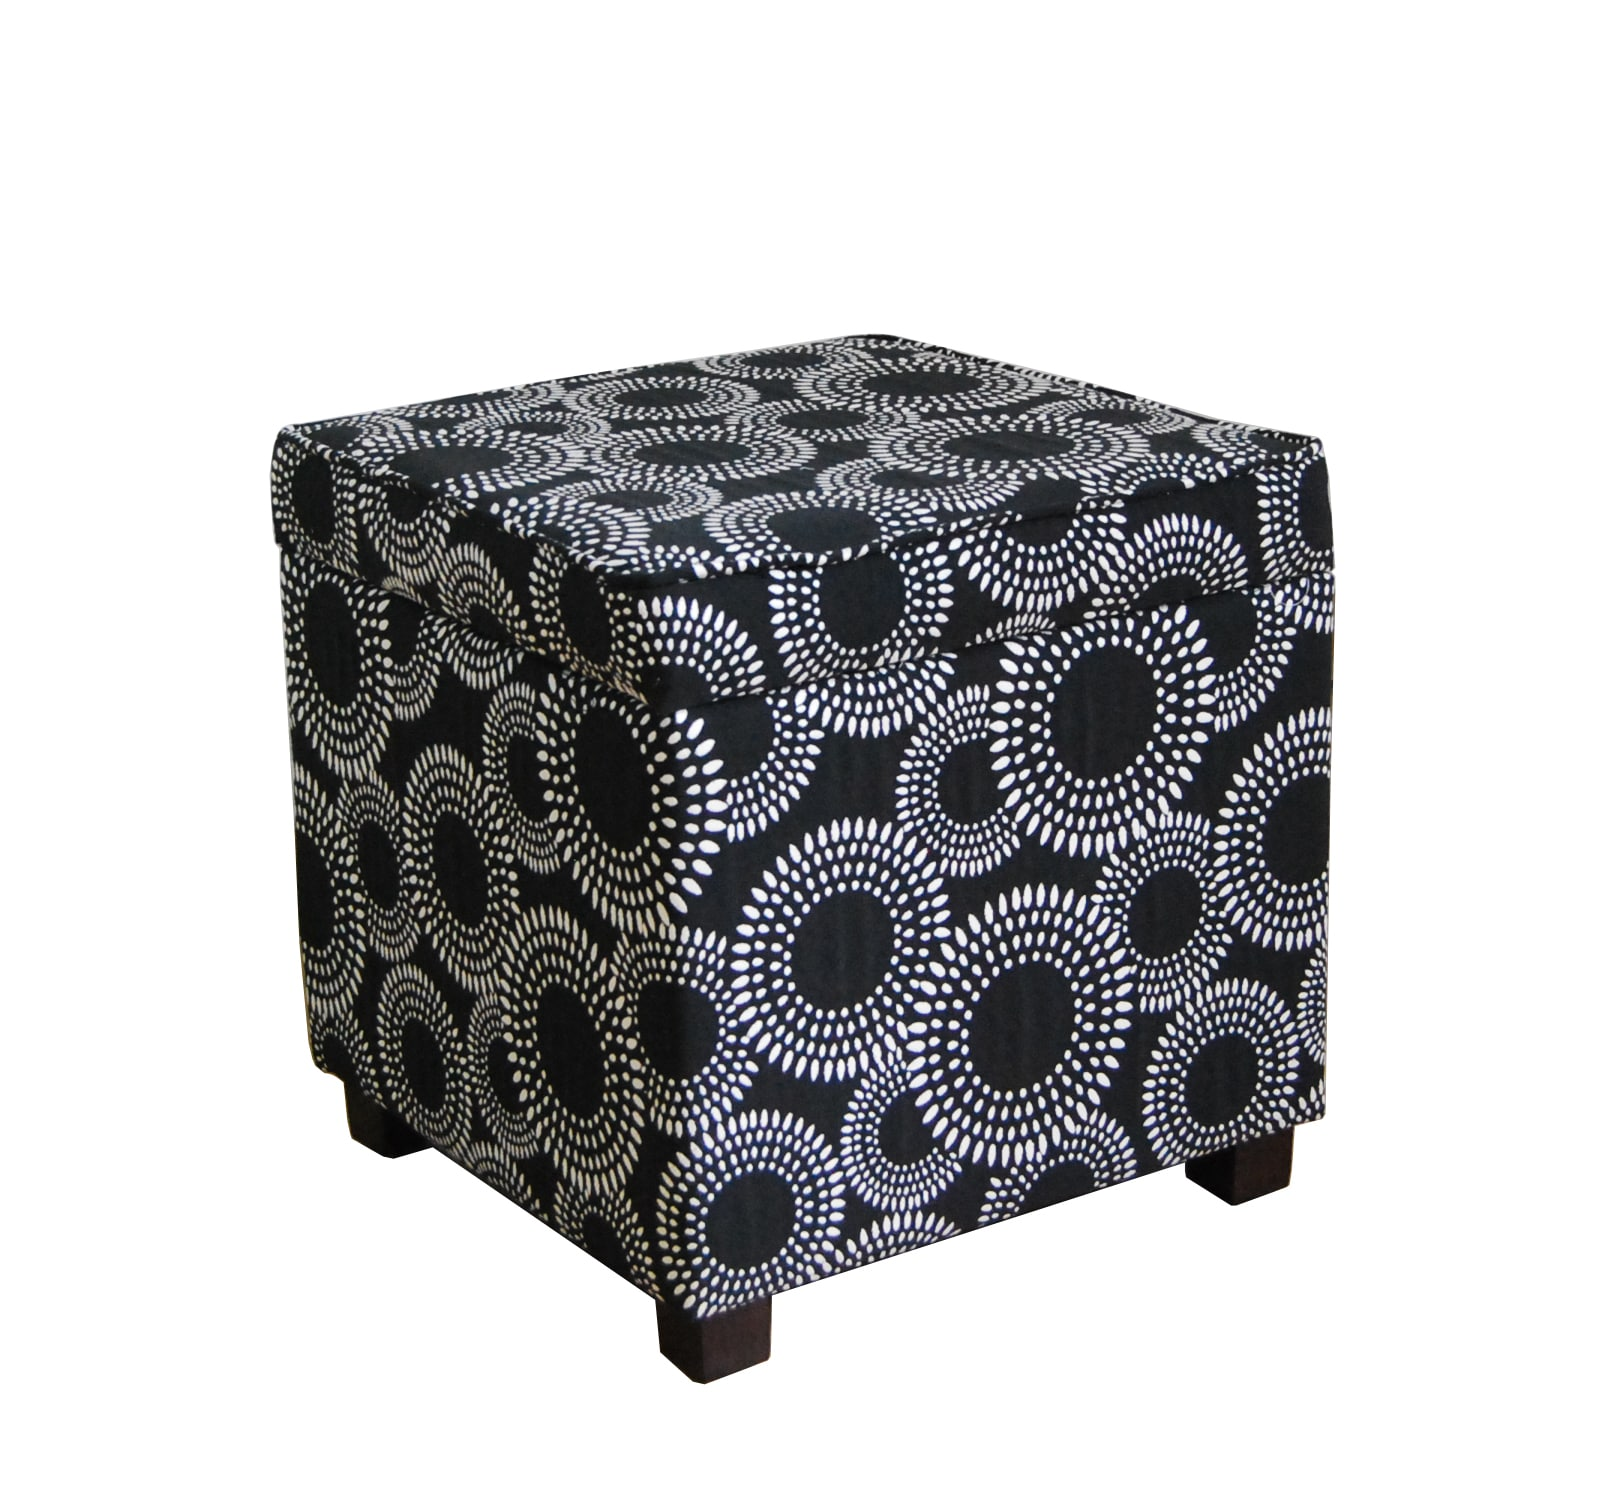 Black Circle Dot Geometric Square Storage Ottoman